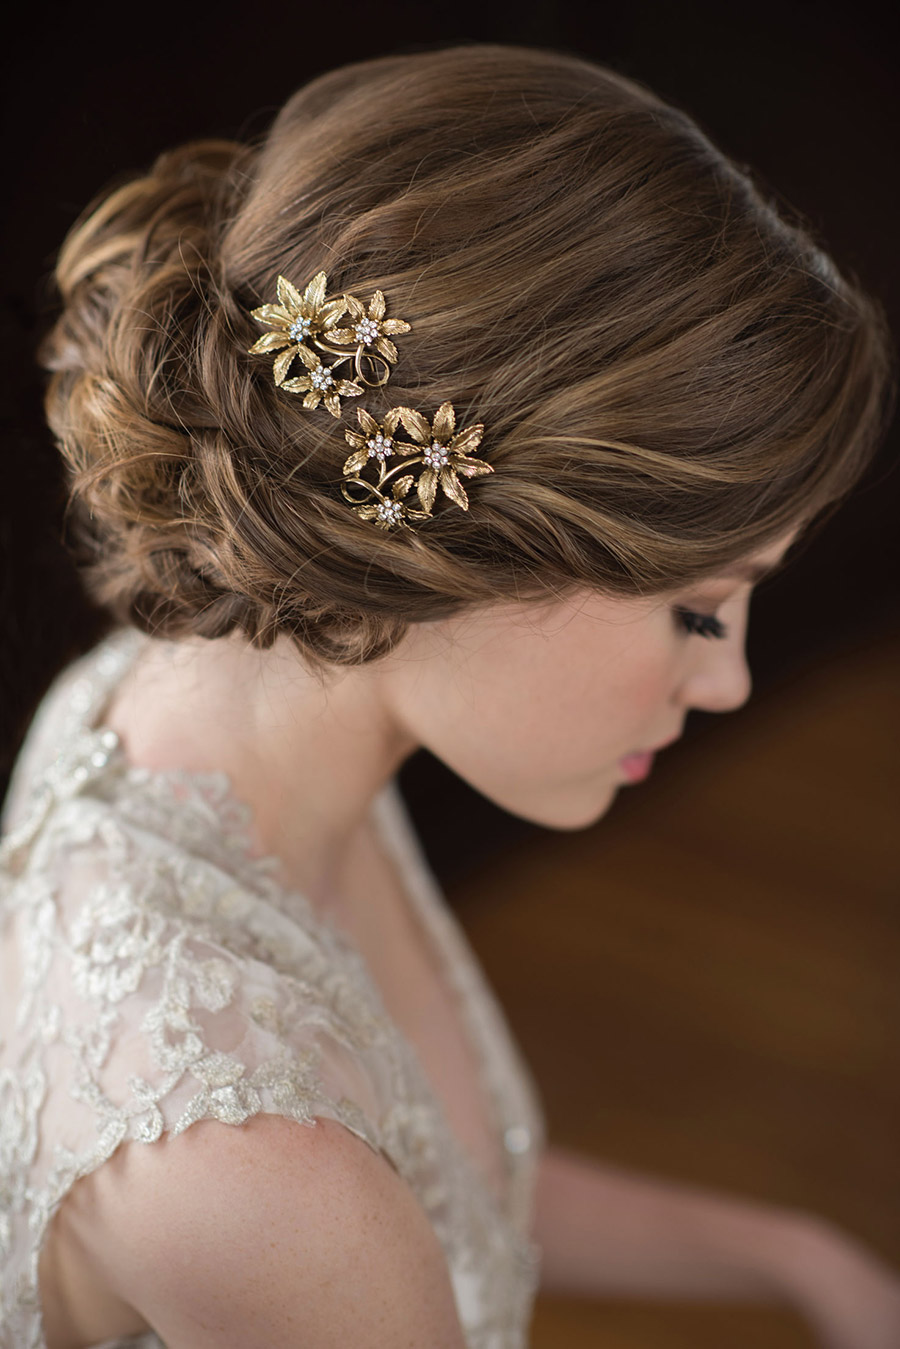 bel aire bridal accessories gilded hairpiece antique gold flower 1723 klk photography ebell wedding shoot sv